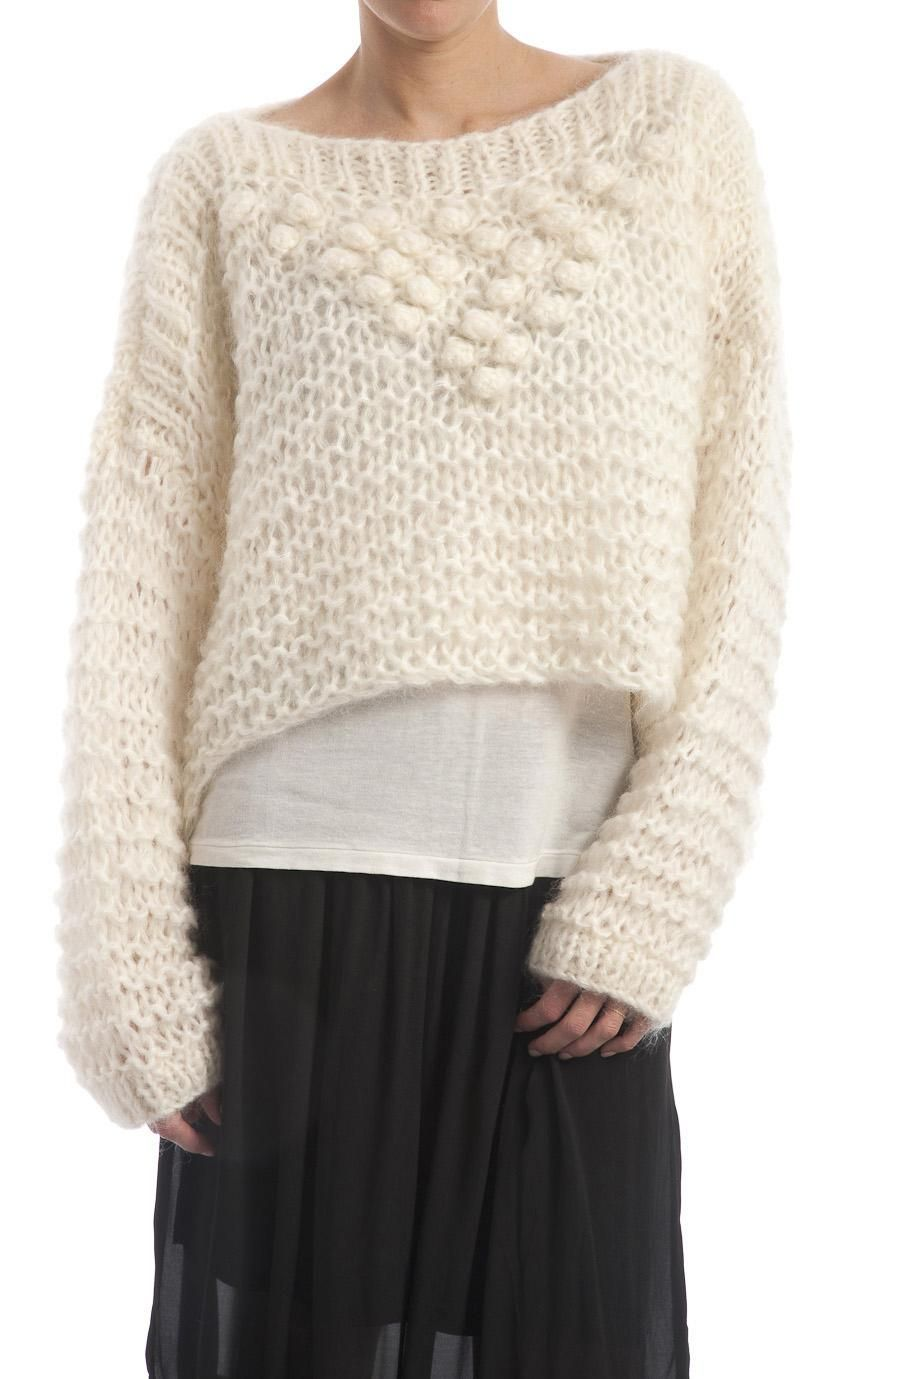 Mes demoiselles Pull russel | Knit. Dos agujas. | Pinterest | Tricot ...